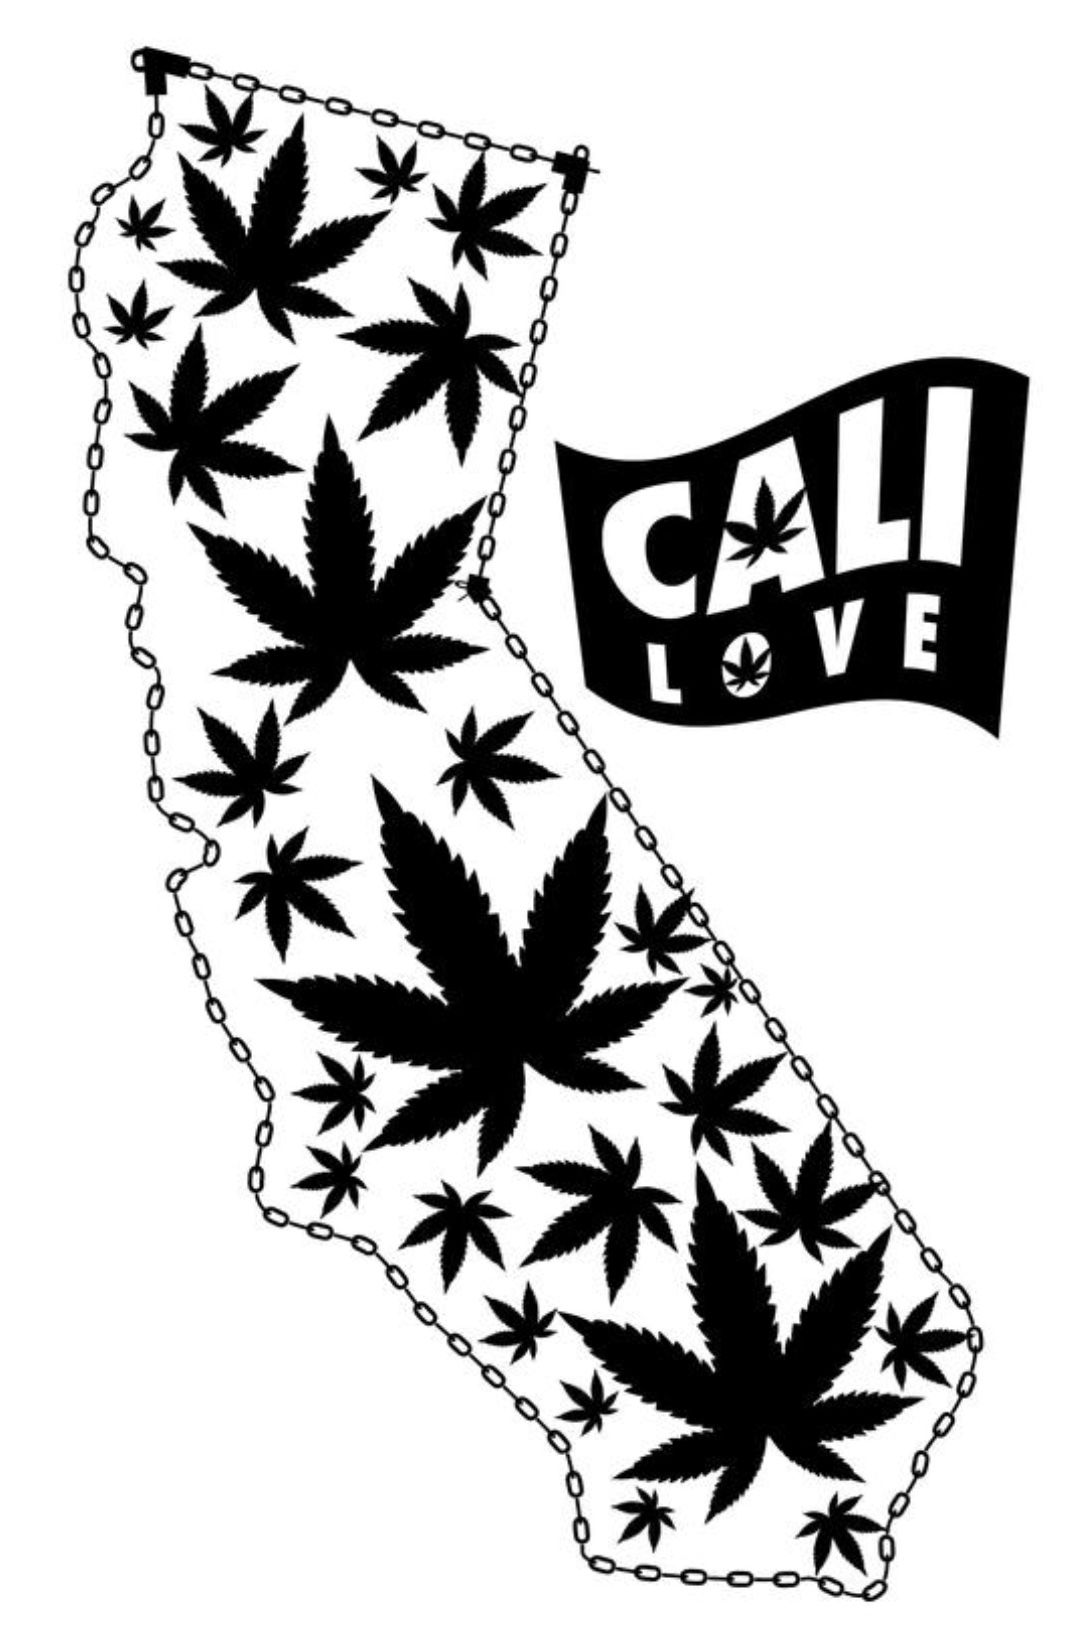 Download Tupac Shakur SVG Collection in 2020 | California love ...